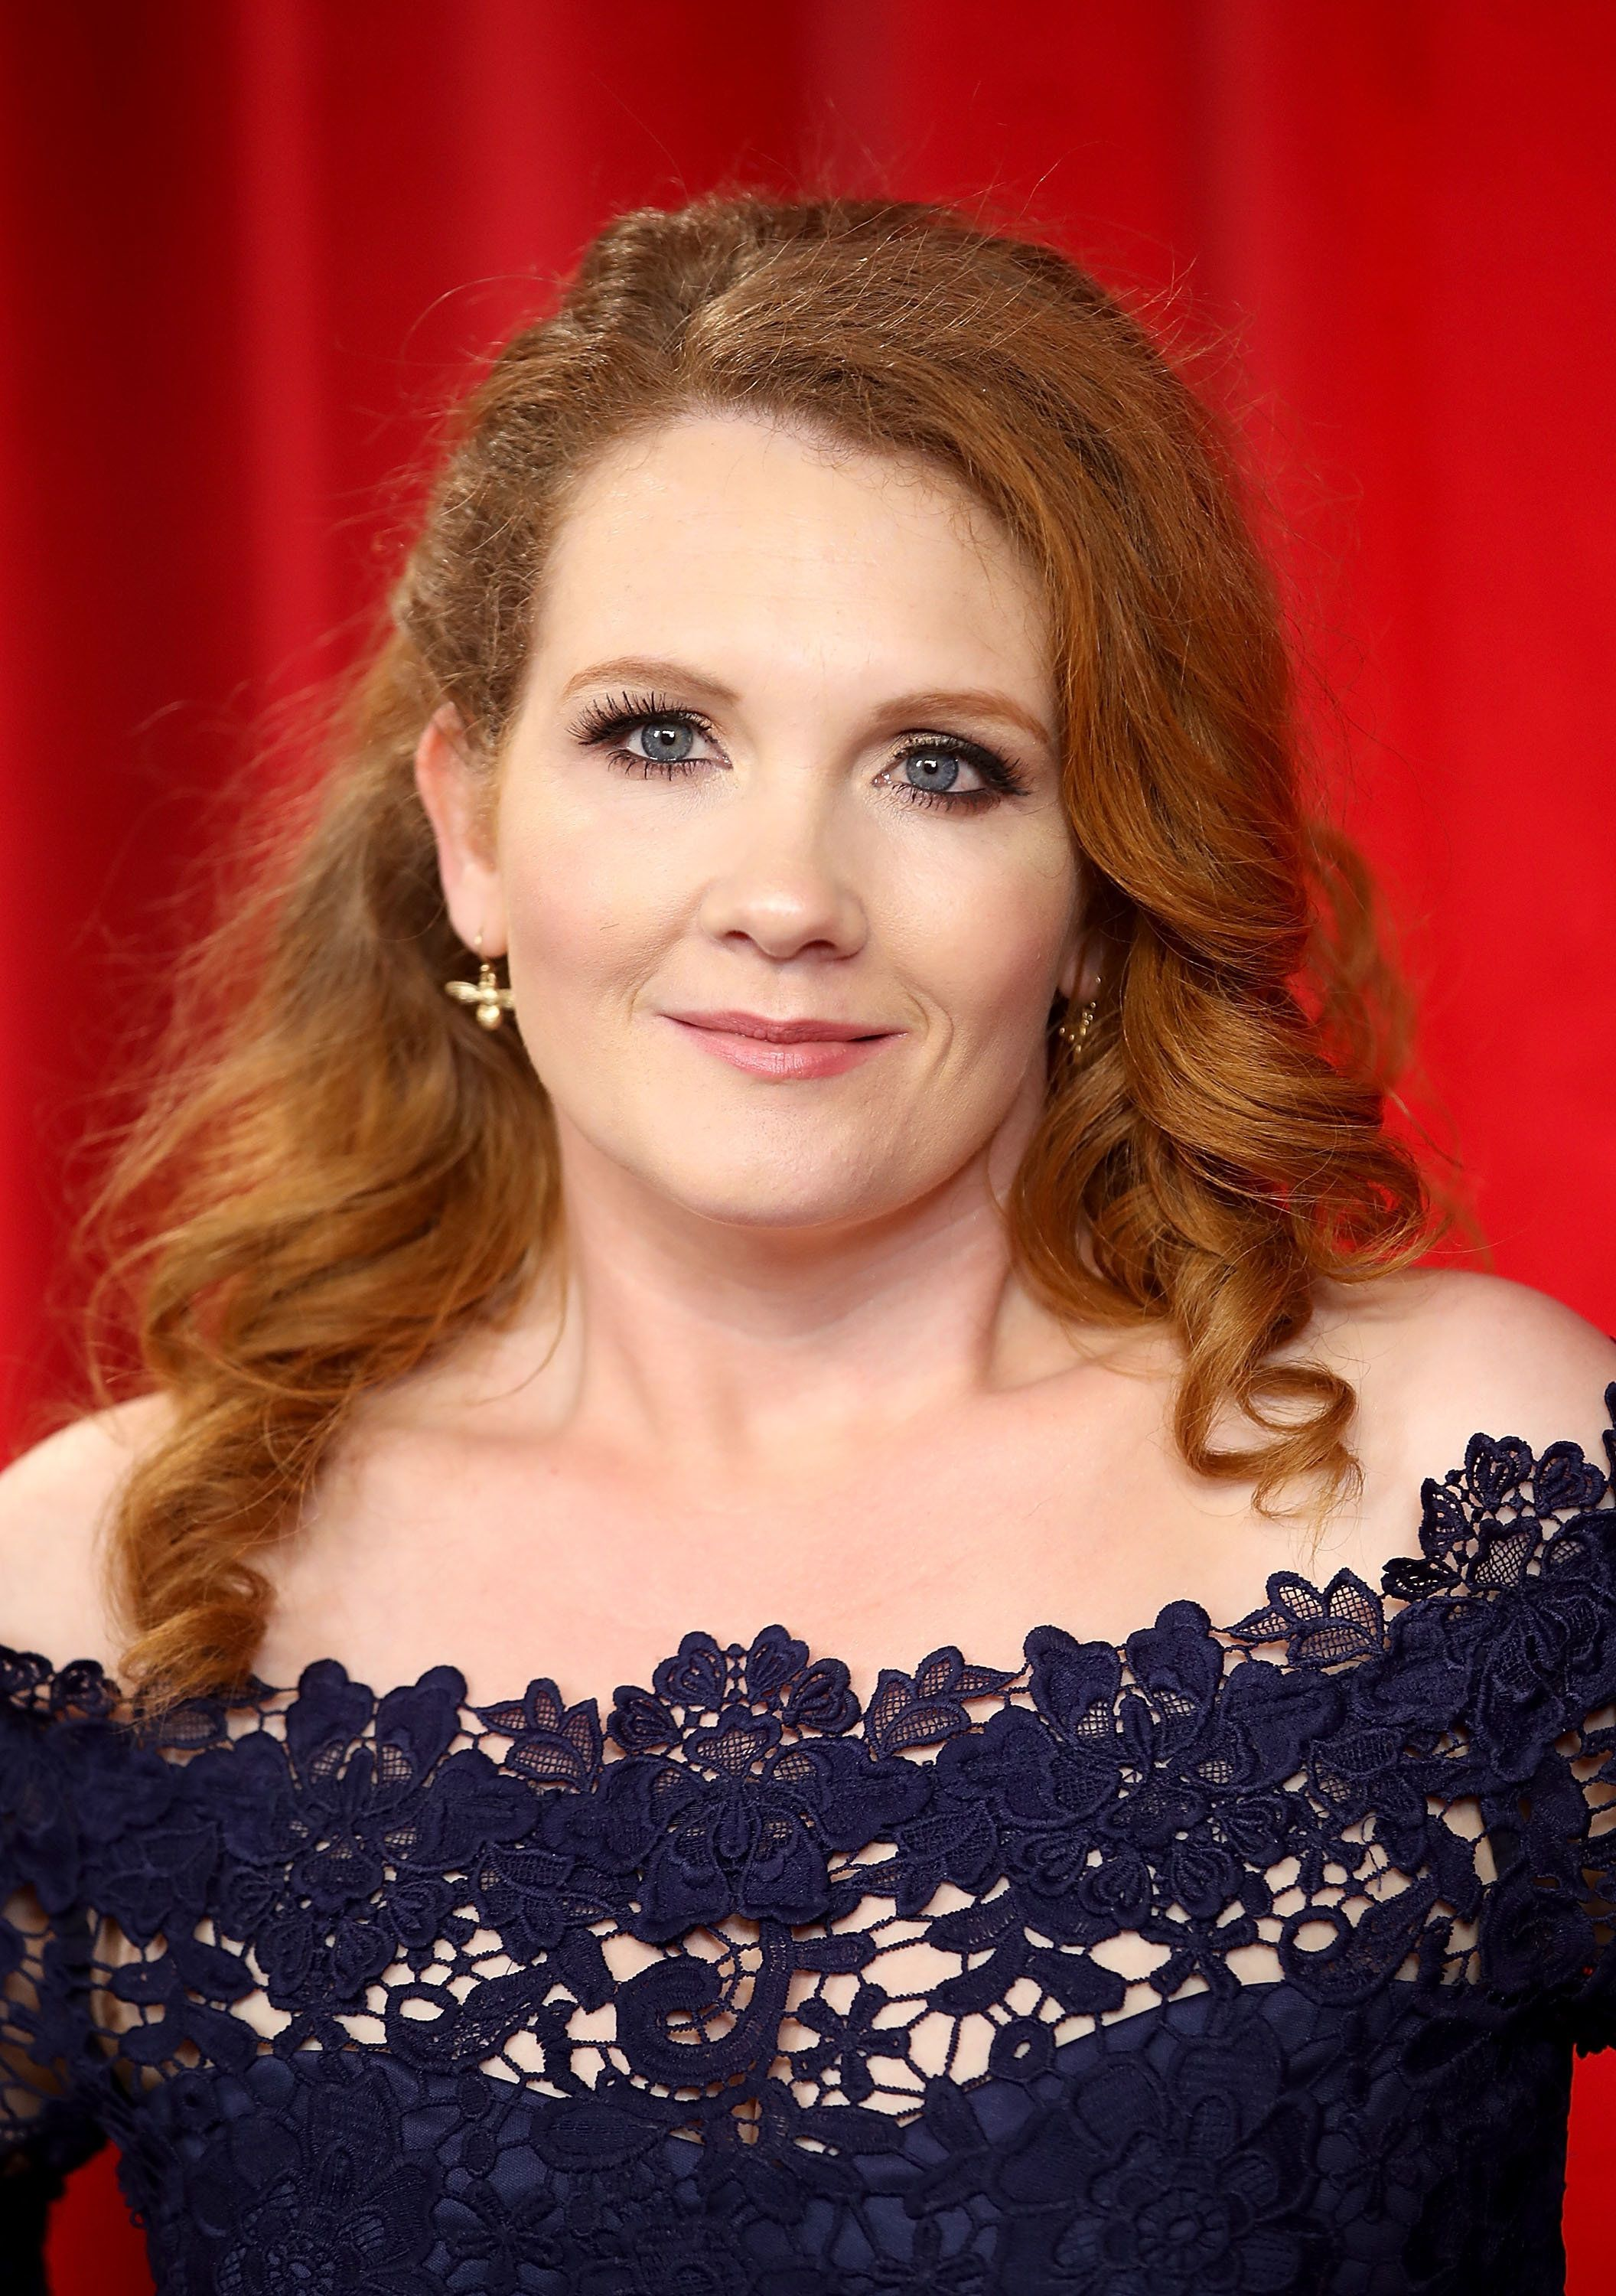 Corrie's Jennie McAlpine Pays Touching Tribute To Manchester Bombing Victims At The British Soap